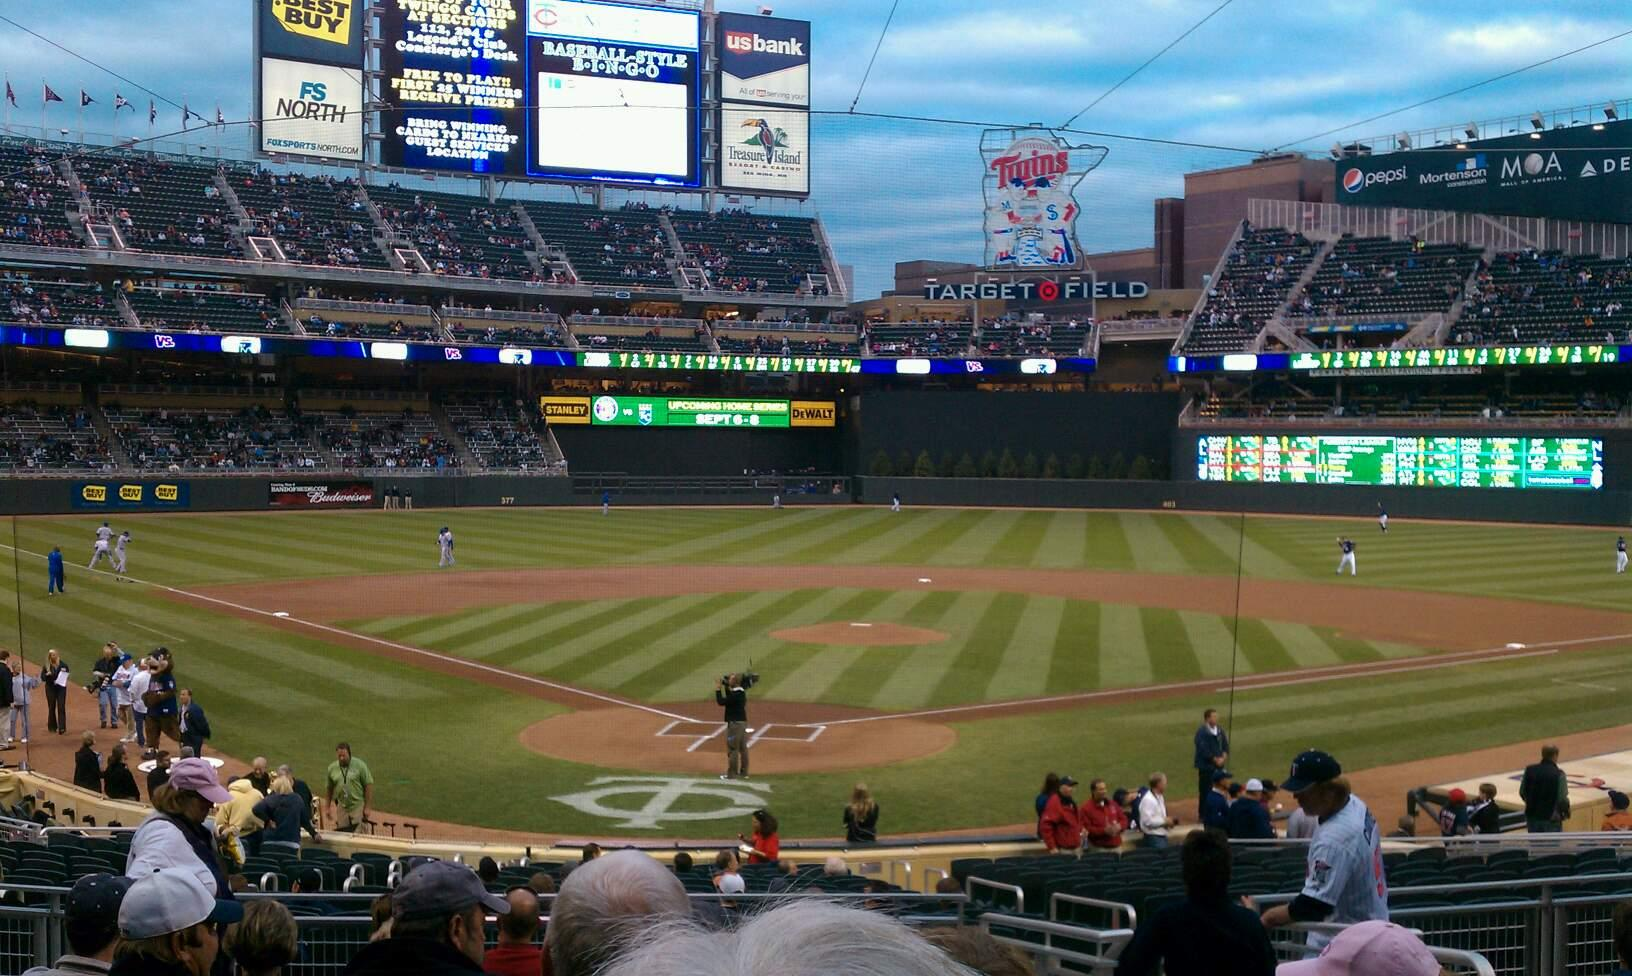 Target Field Section 113 Row 10 Seat 4